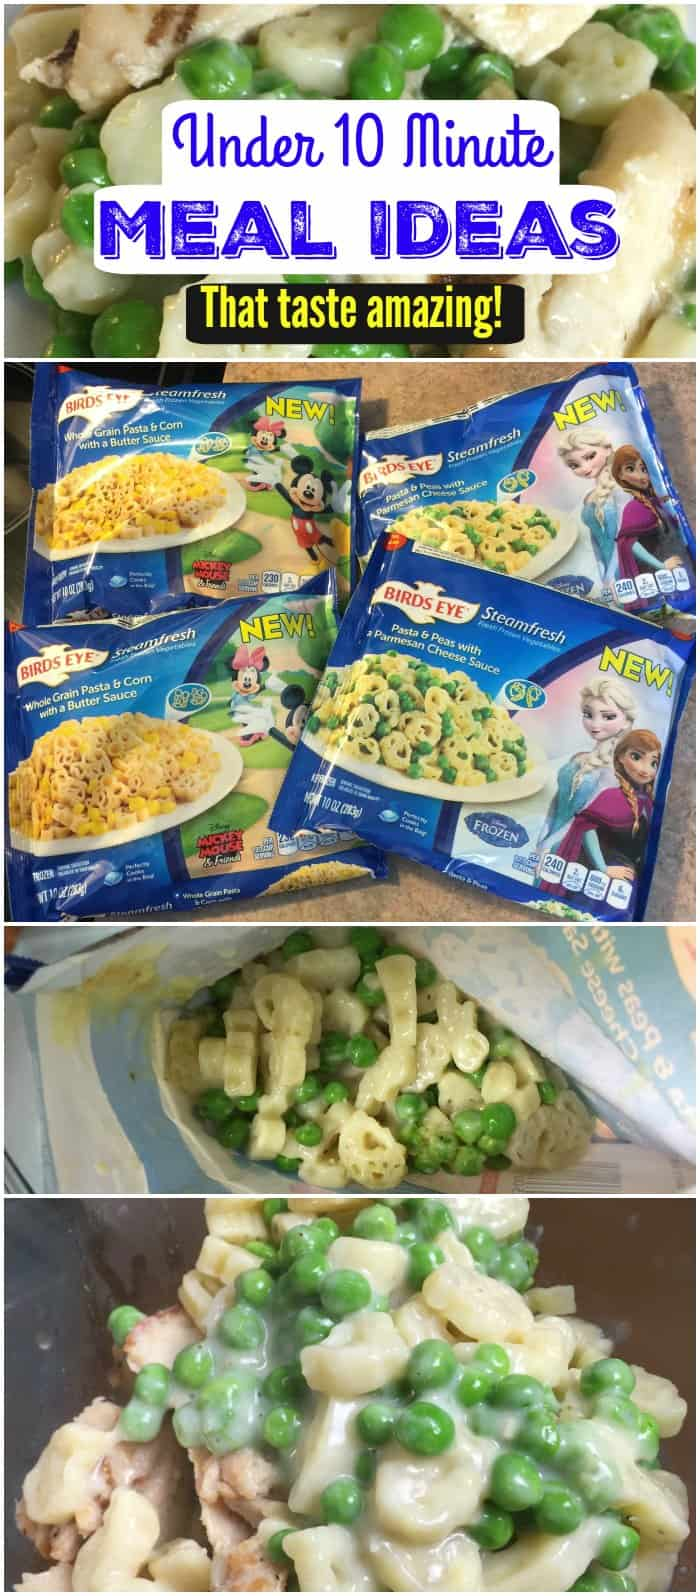 Under 10 Minute Quick Meal Ideas for Families